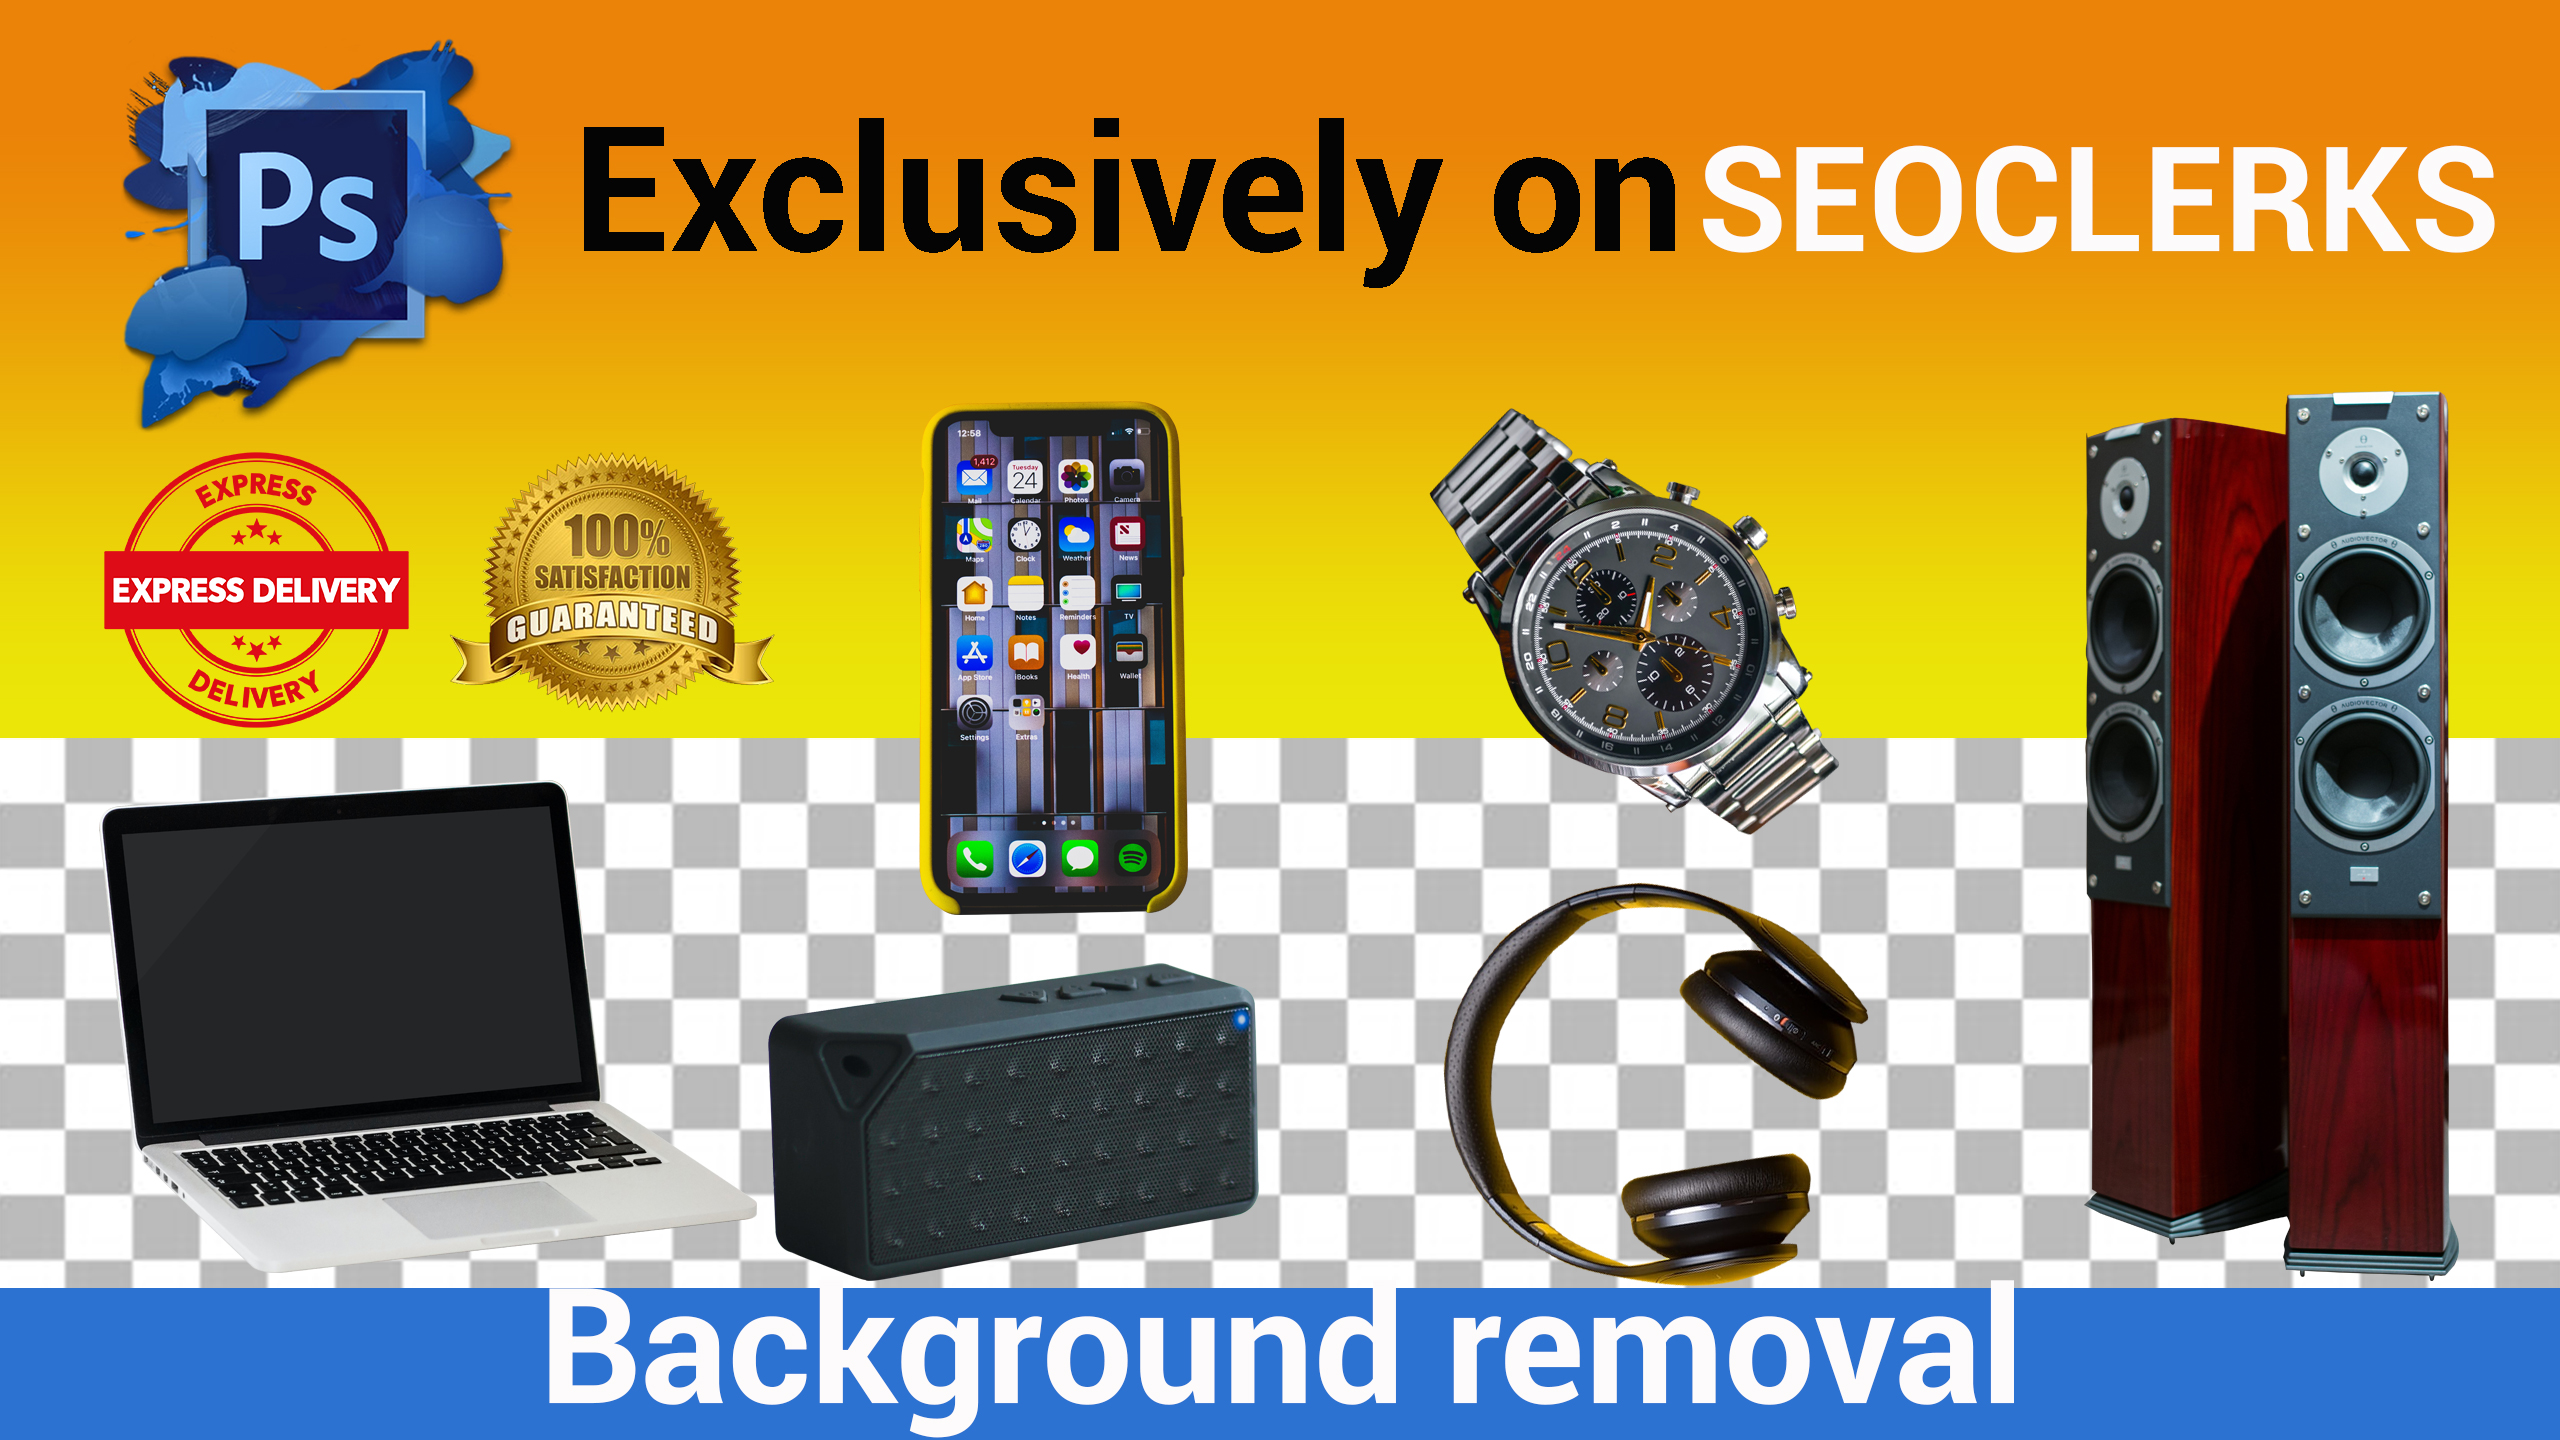 I will remove any product background fastest for amazon,  ebay,  alibaba